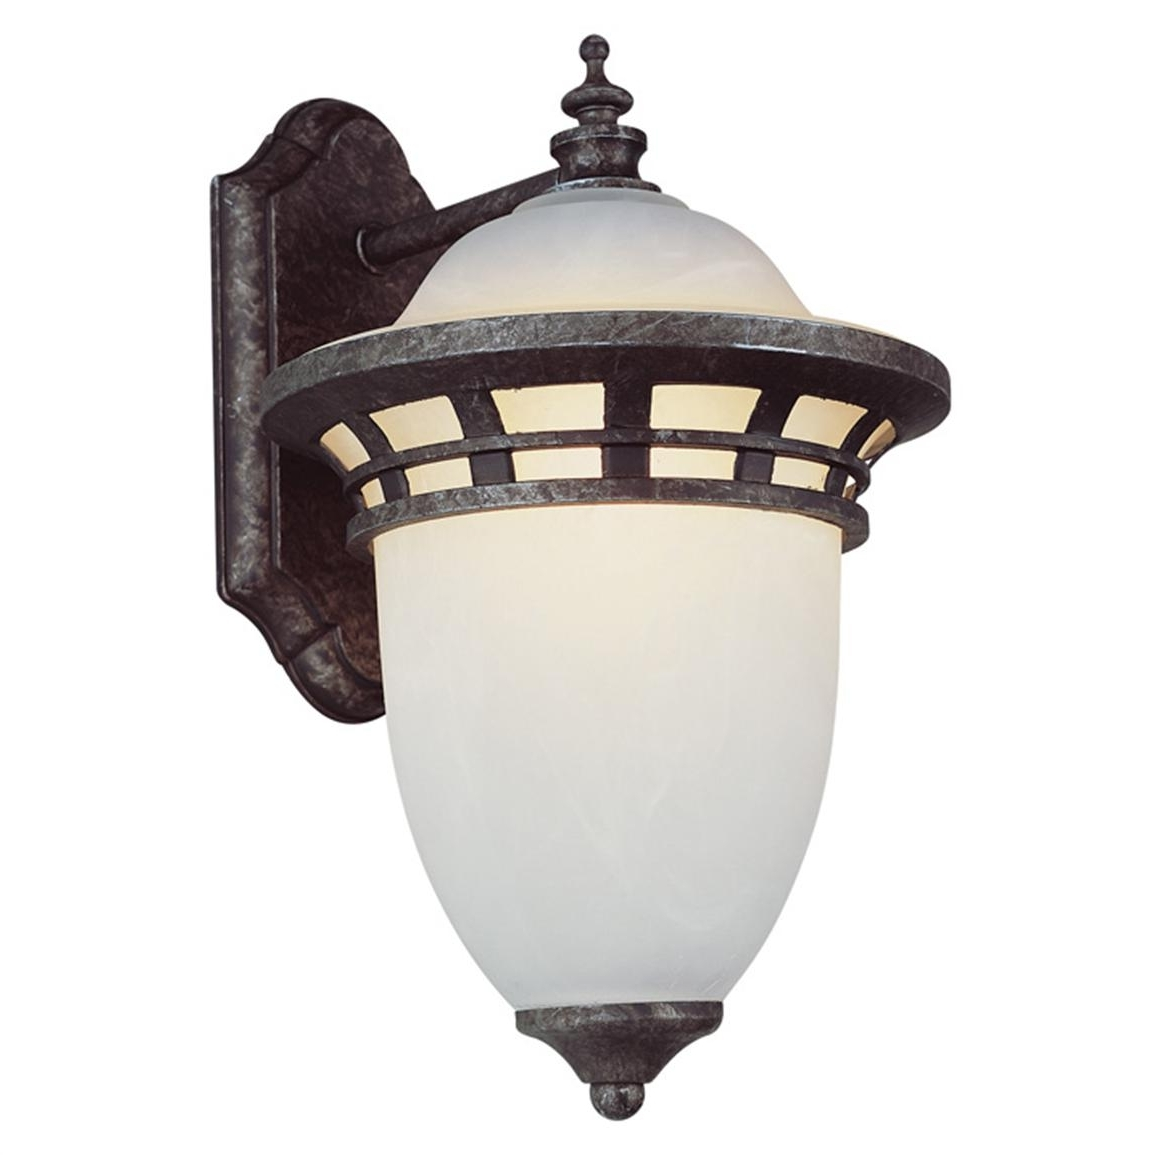 Newest Outdoor Wall Lantern By Transglobe Lighting Inside Trans Globe Lighting 1 – Light Outdoor Antique Wall Lantern –  (View 13 of 20)